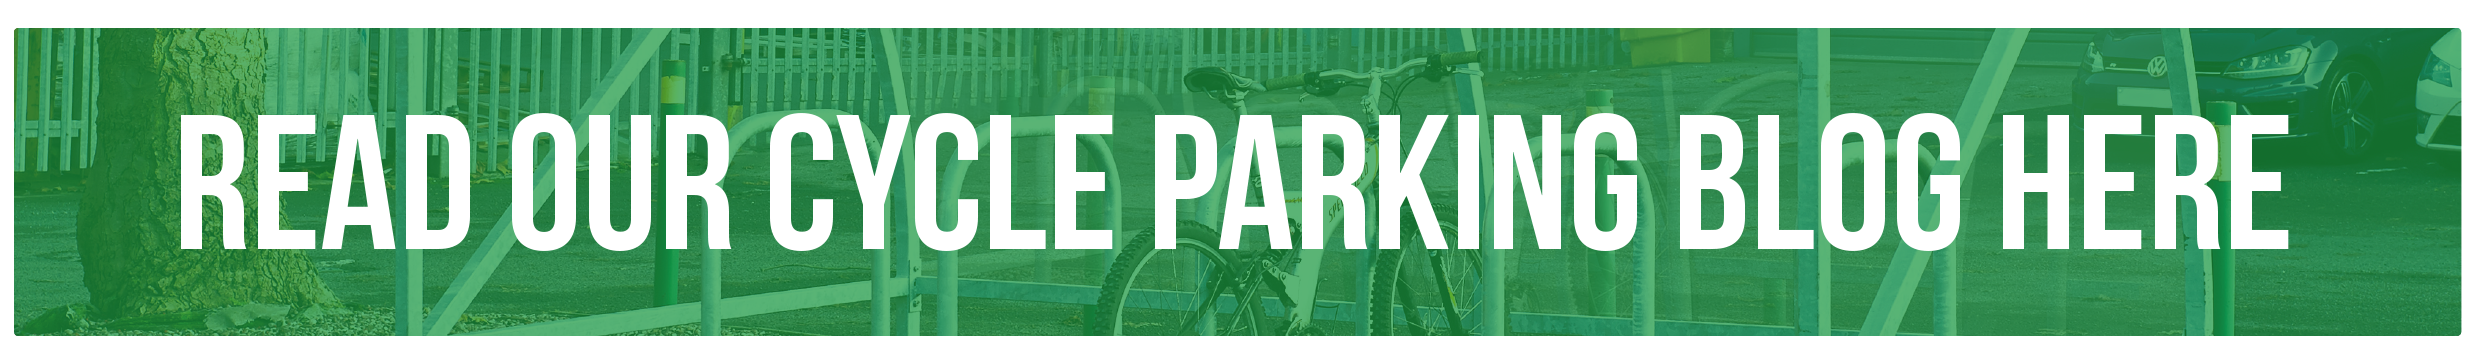 Read Our Cycle Parking Blog Here